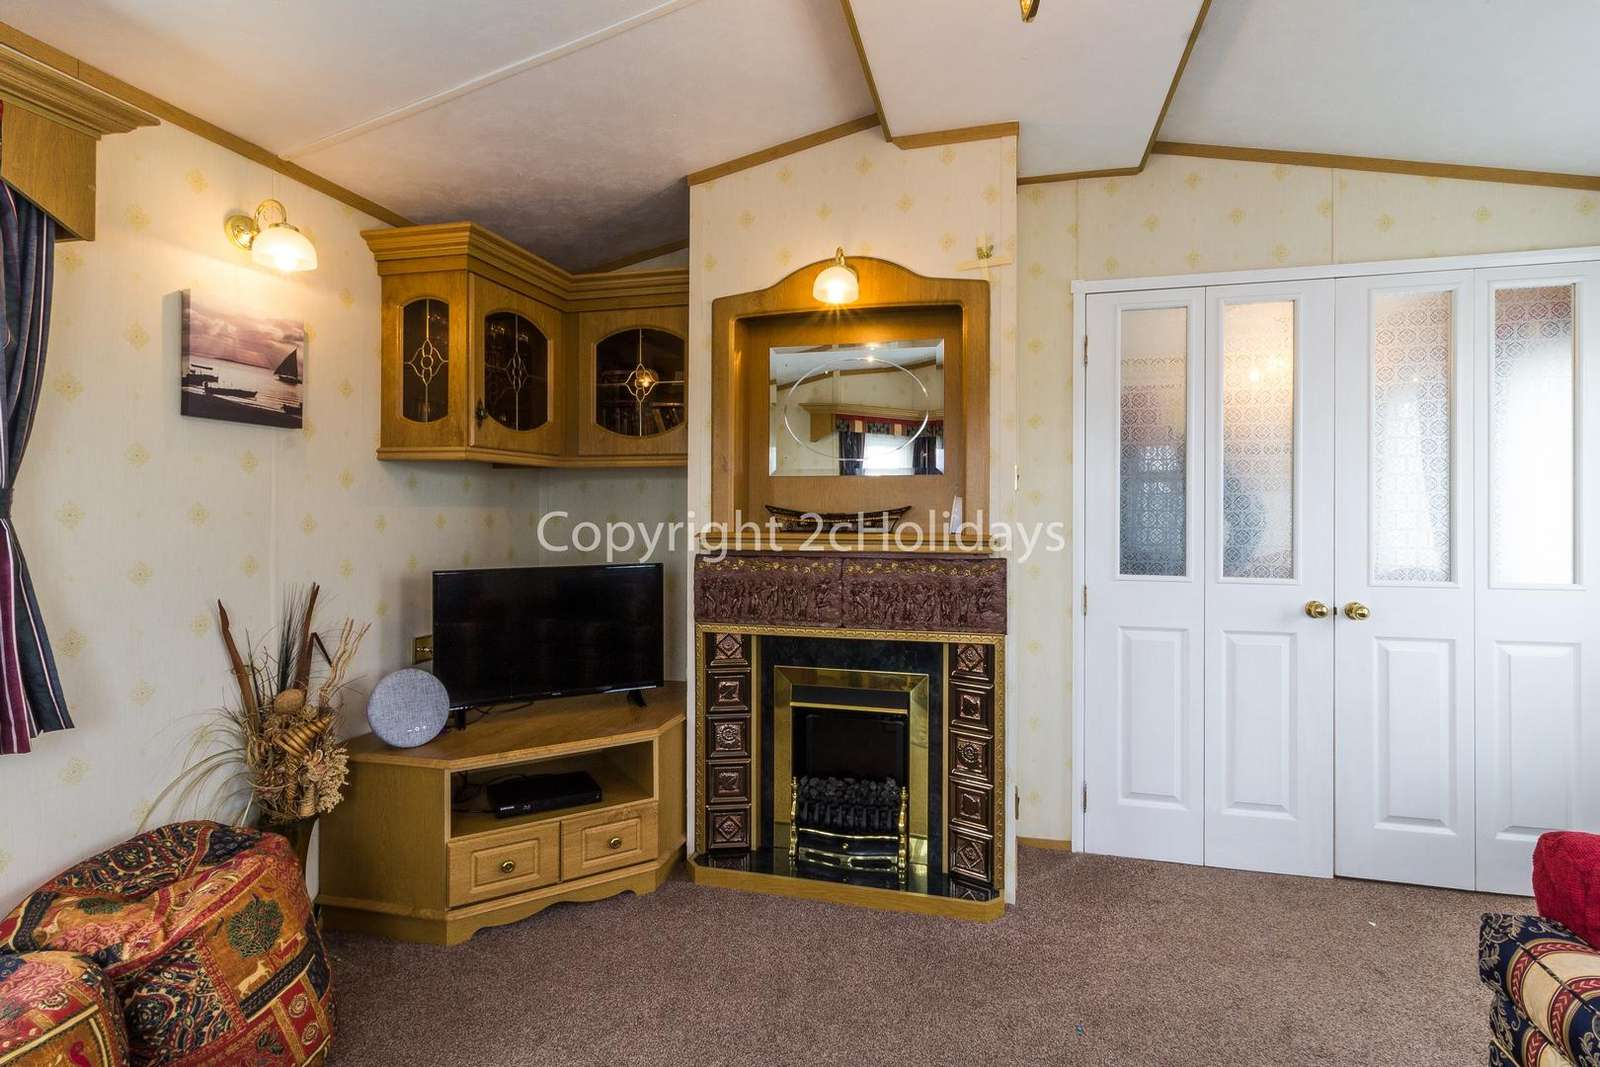 So many families have enjoyed their stay at Towervans Caravan Park